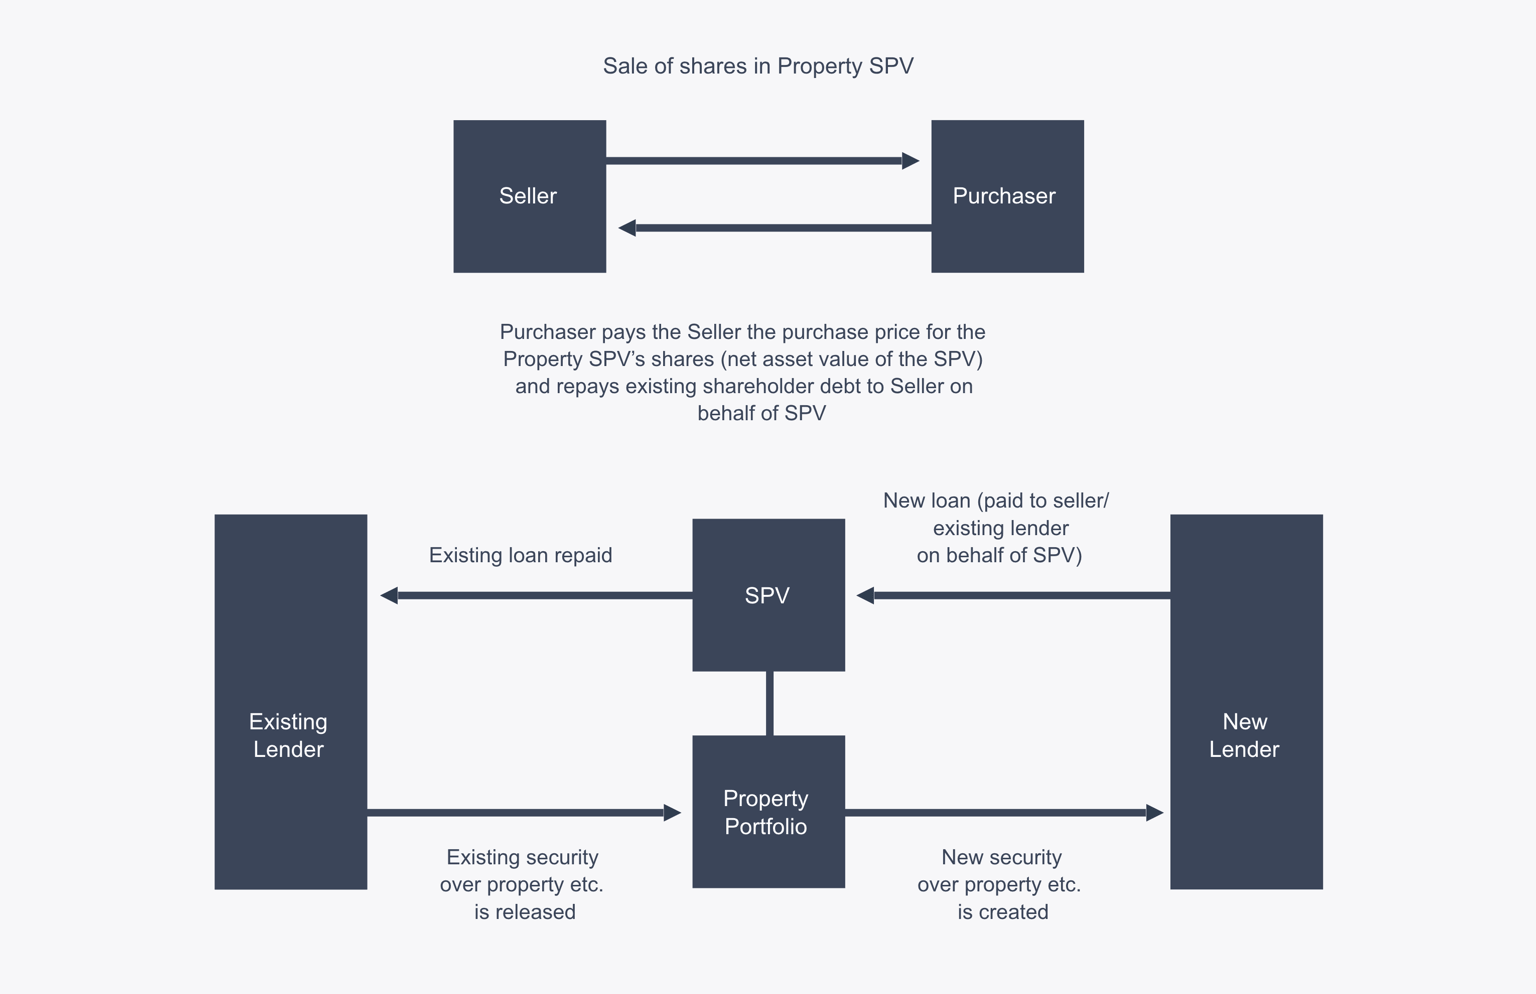 Structure Of A Typical Property SPV Purchase